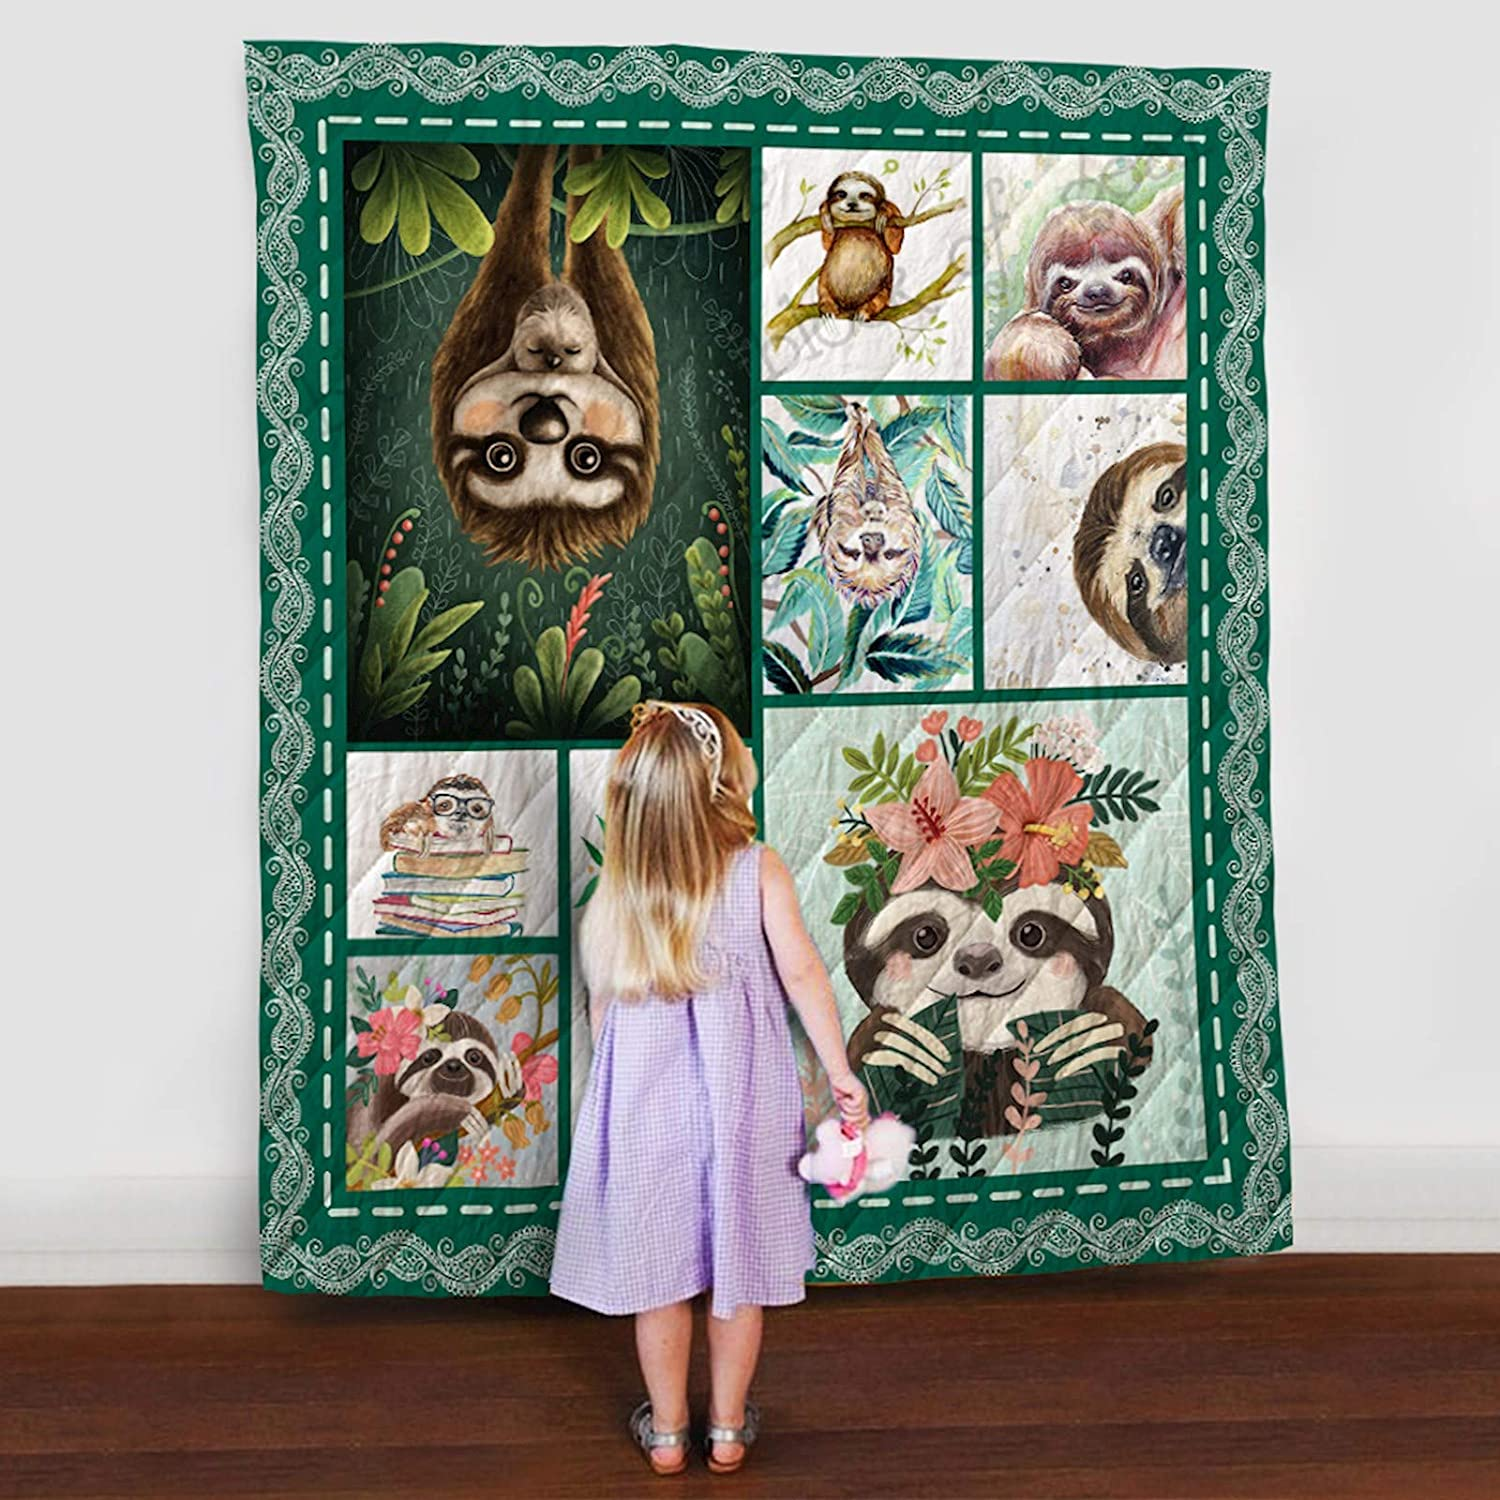 Sloth Quilt TH565, Queen All-Season Quilts Comforters with Reversible Cotton King Queen Twin Size - Best Decorative Quilts-Unique Quilted for Gifts